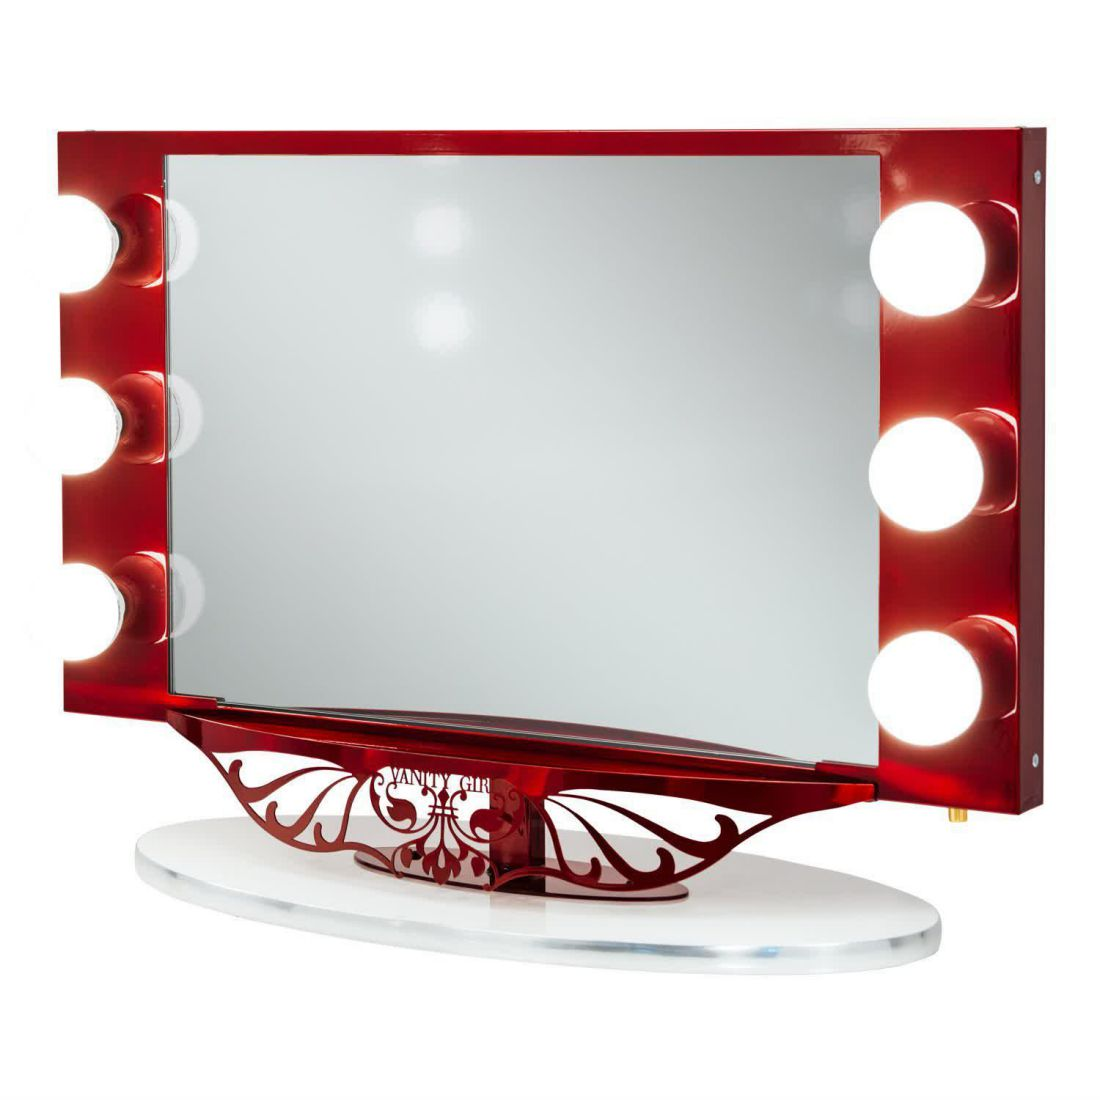 Vanity Girl Lighted Mirror : Floating Starlet Lighted Vanity Mirror Feel The Home